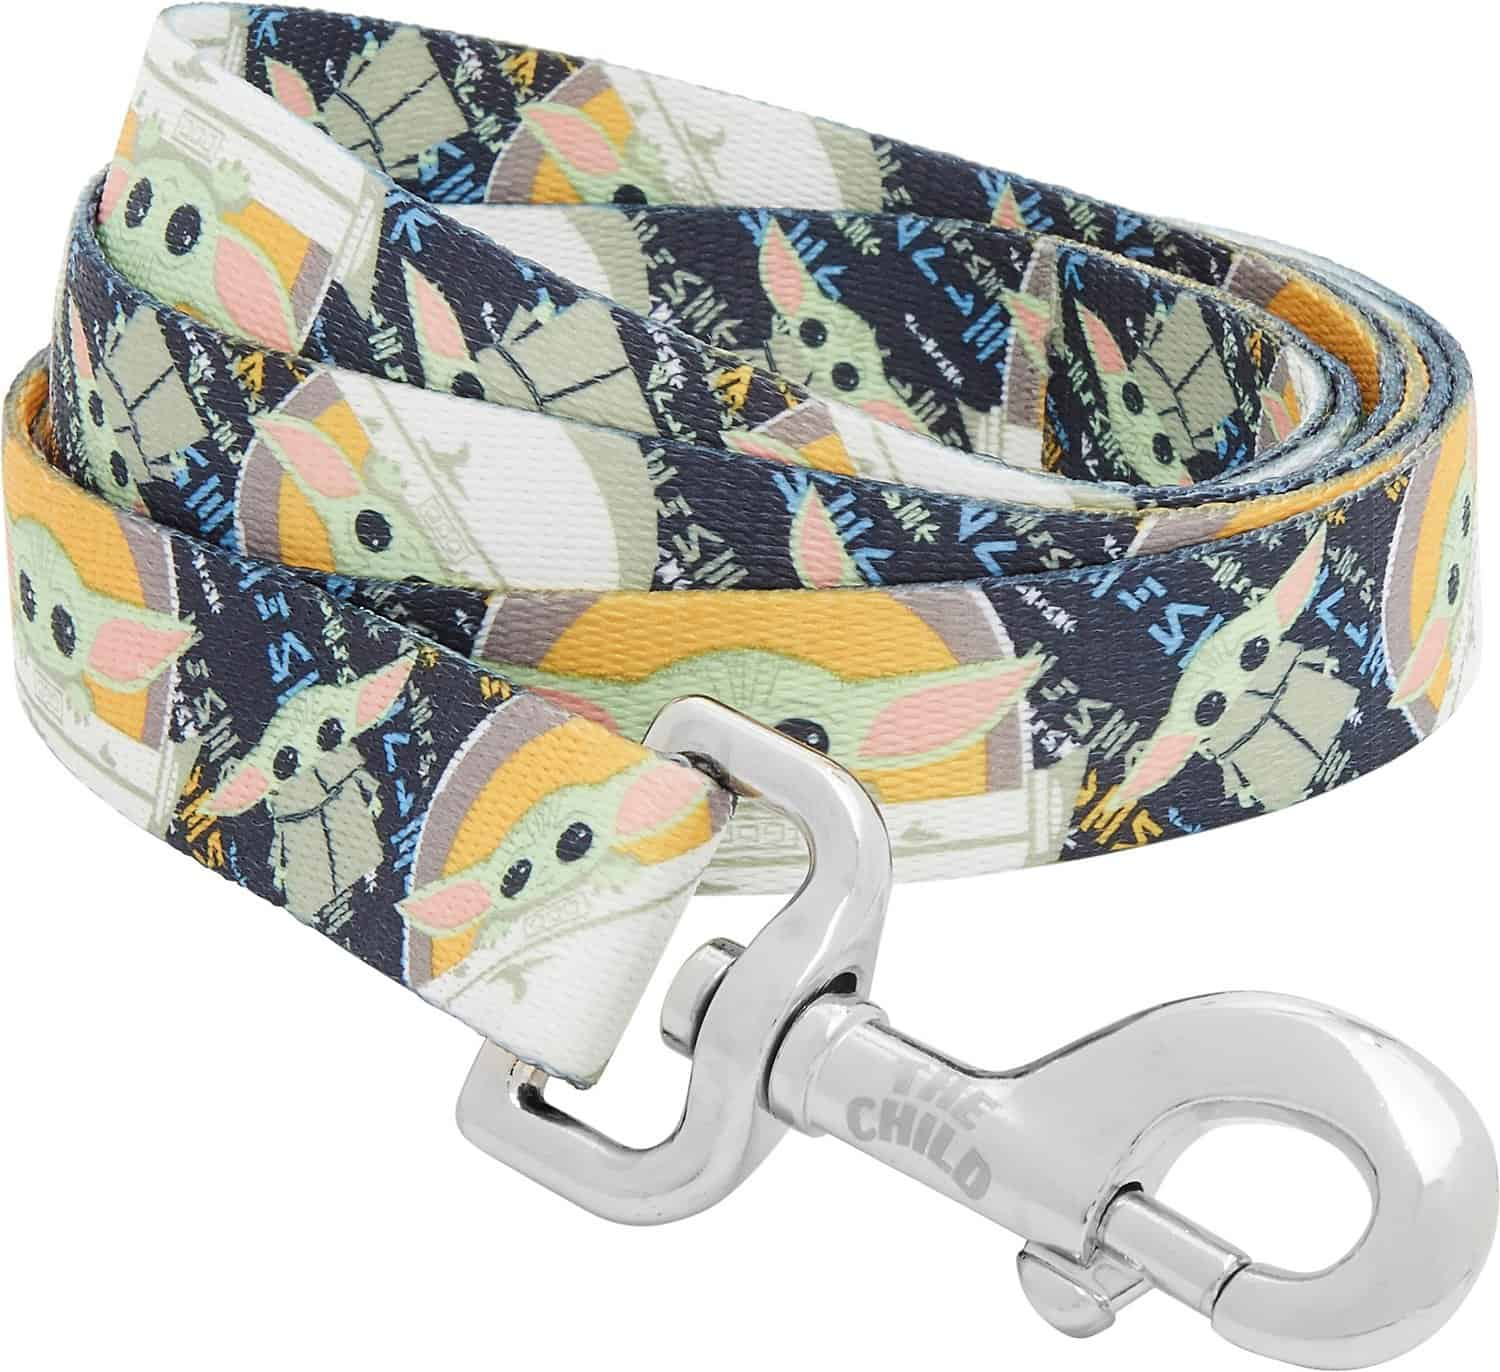 STAR WARS THE MANDALORIAN'S THE CHILD Dog Leash, part of the chewy disney dog collection